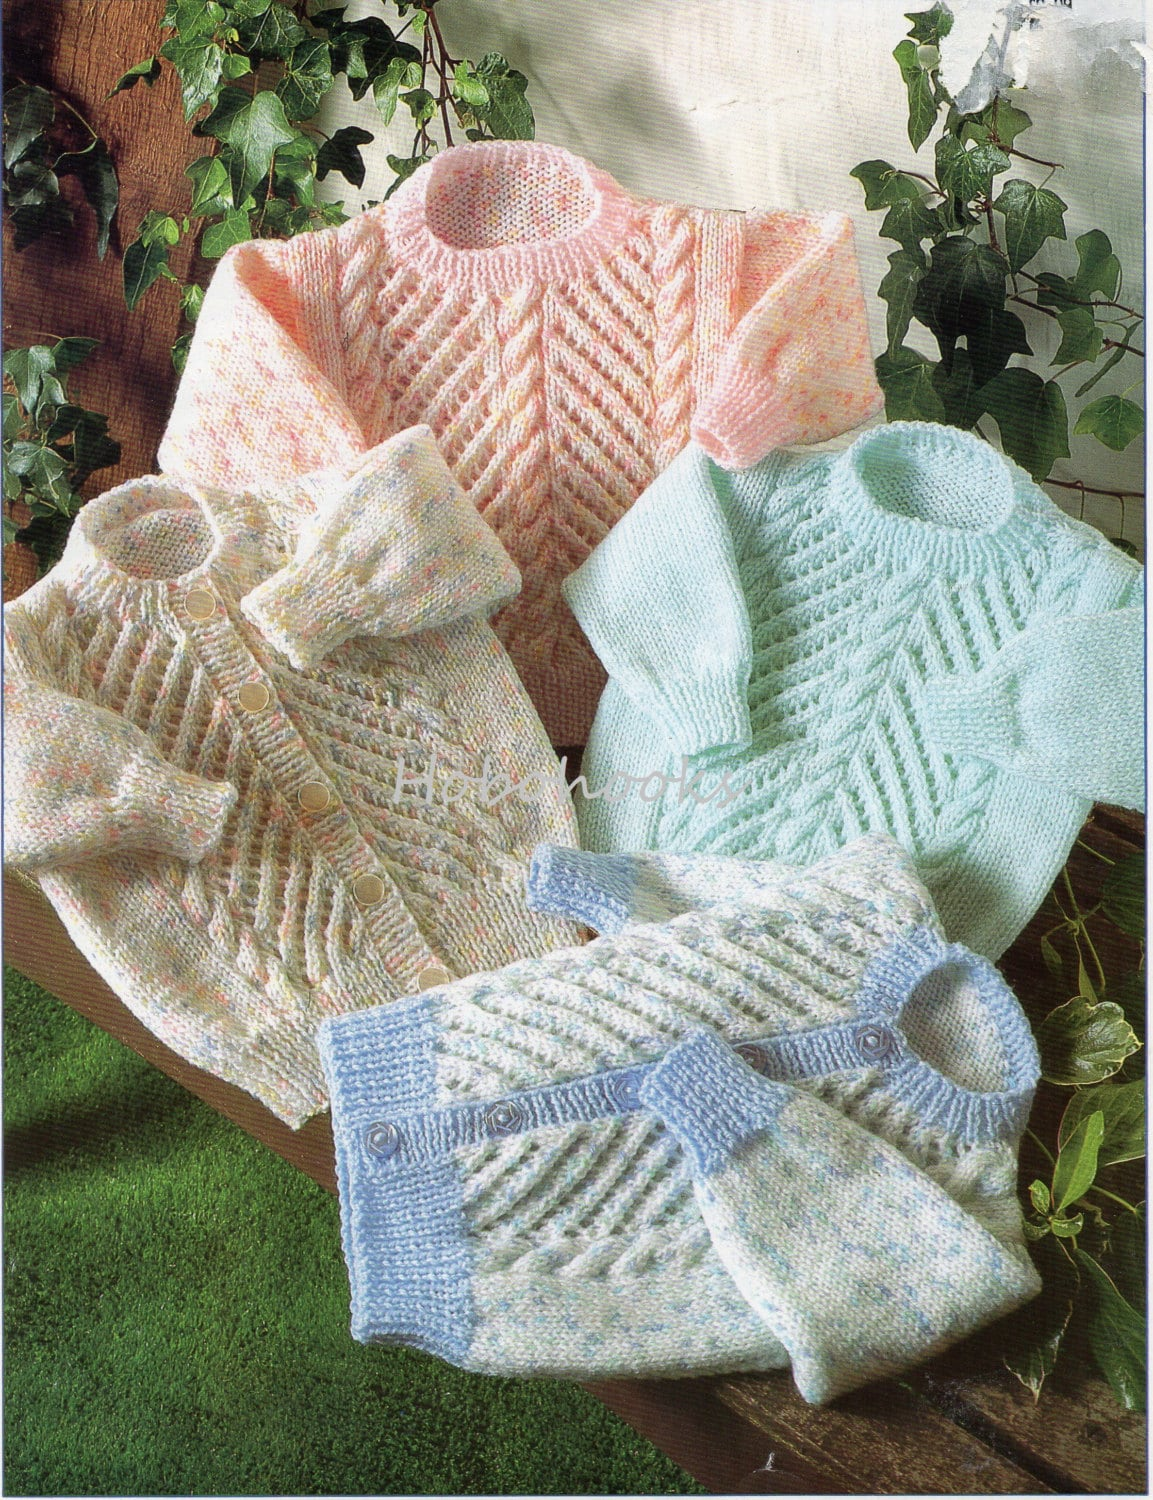 Knitting Patterns For Babies Jumpers : Baby Knitting Pattern Baby Sweater Pattern Baby Jumper Pattern